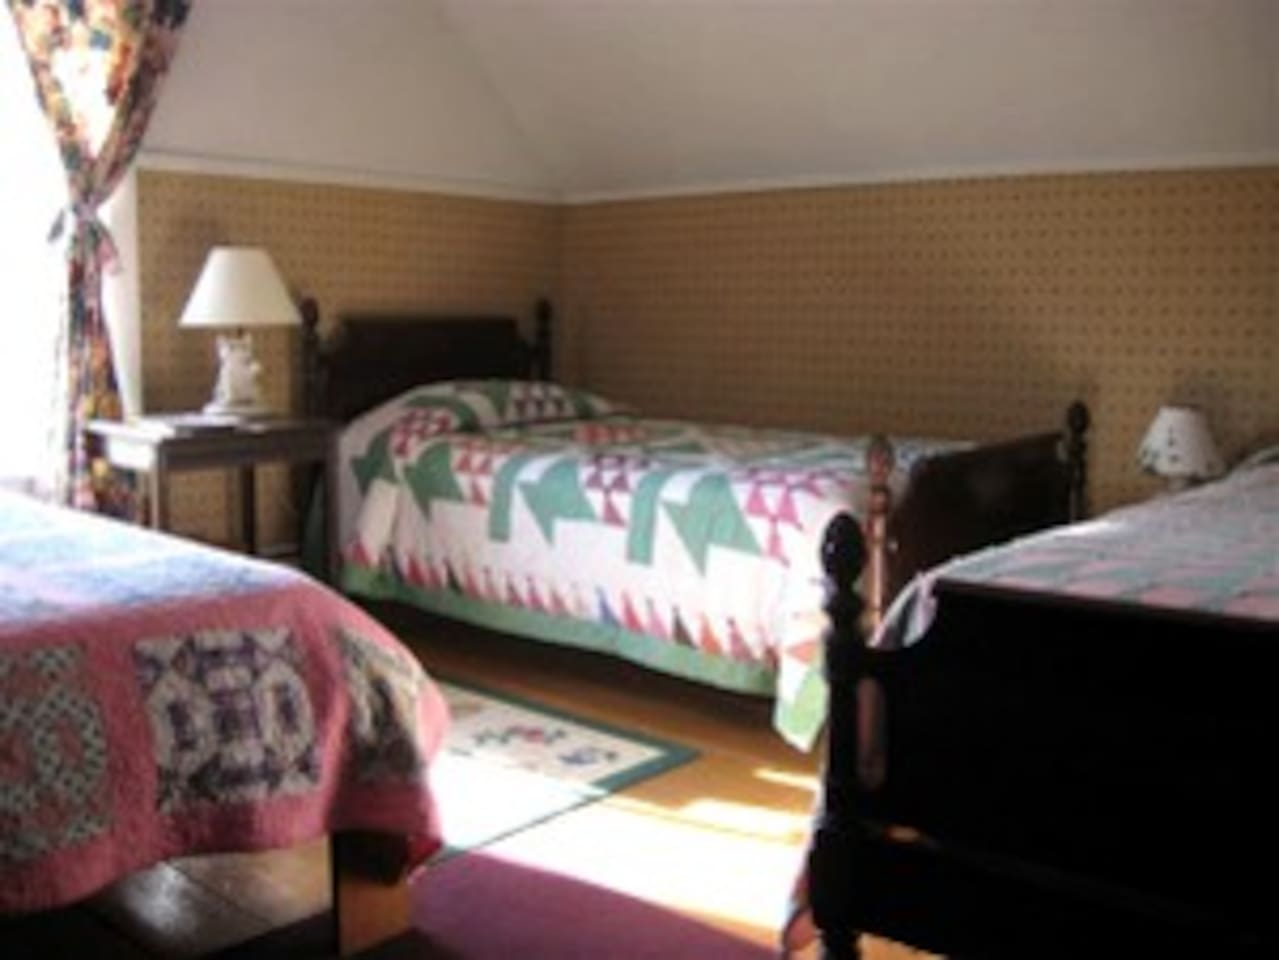 This room is on the second floor, and has one full bed and two twin beds.